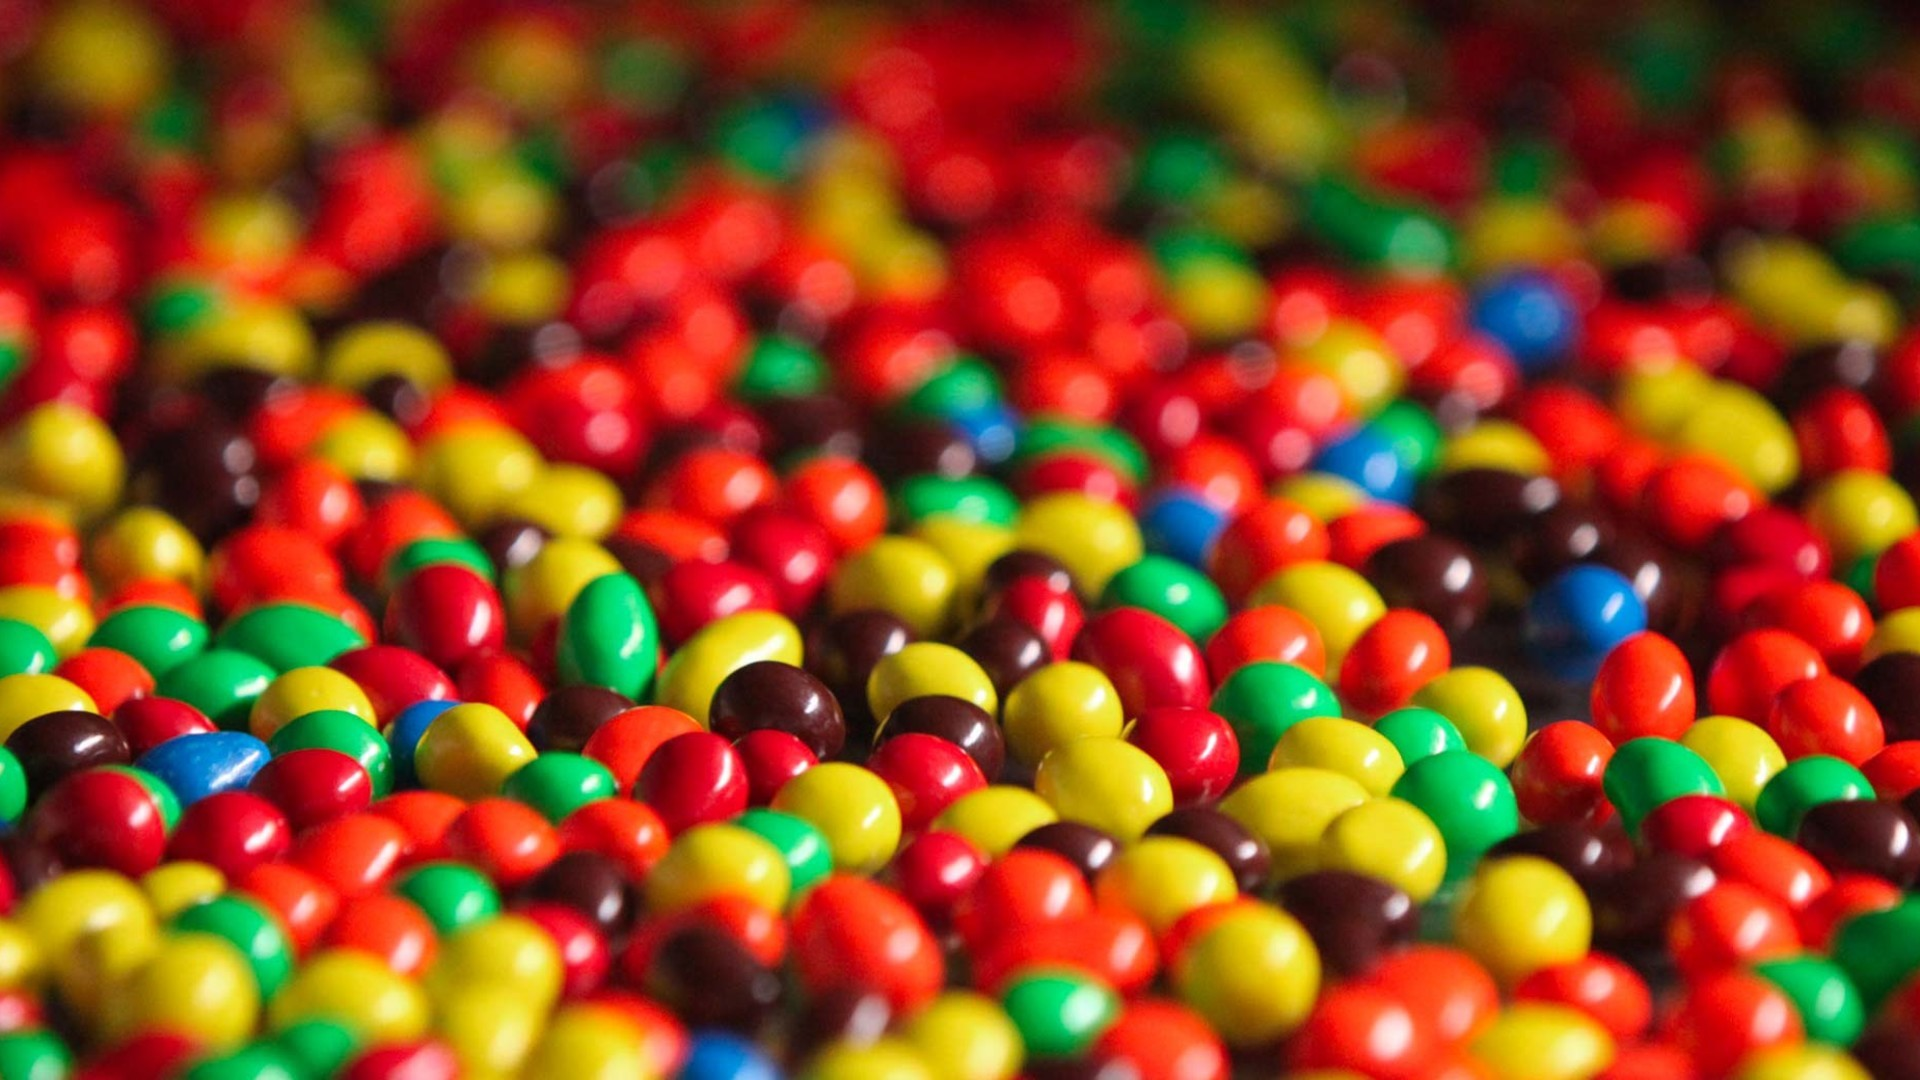 Free download 71 Mm Candy Wallpapers on